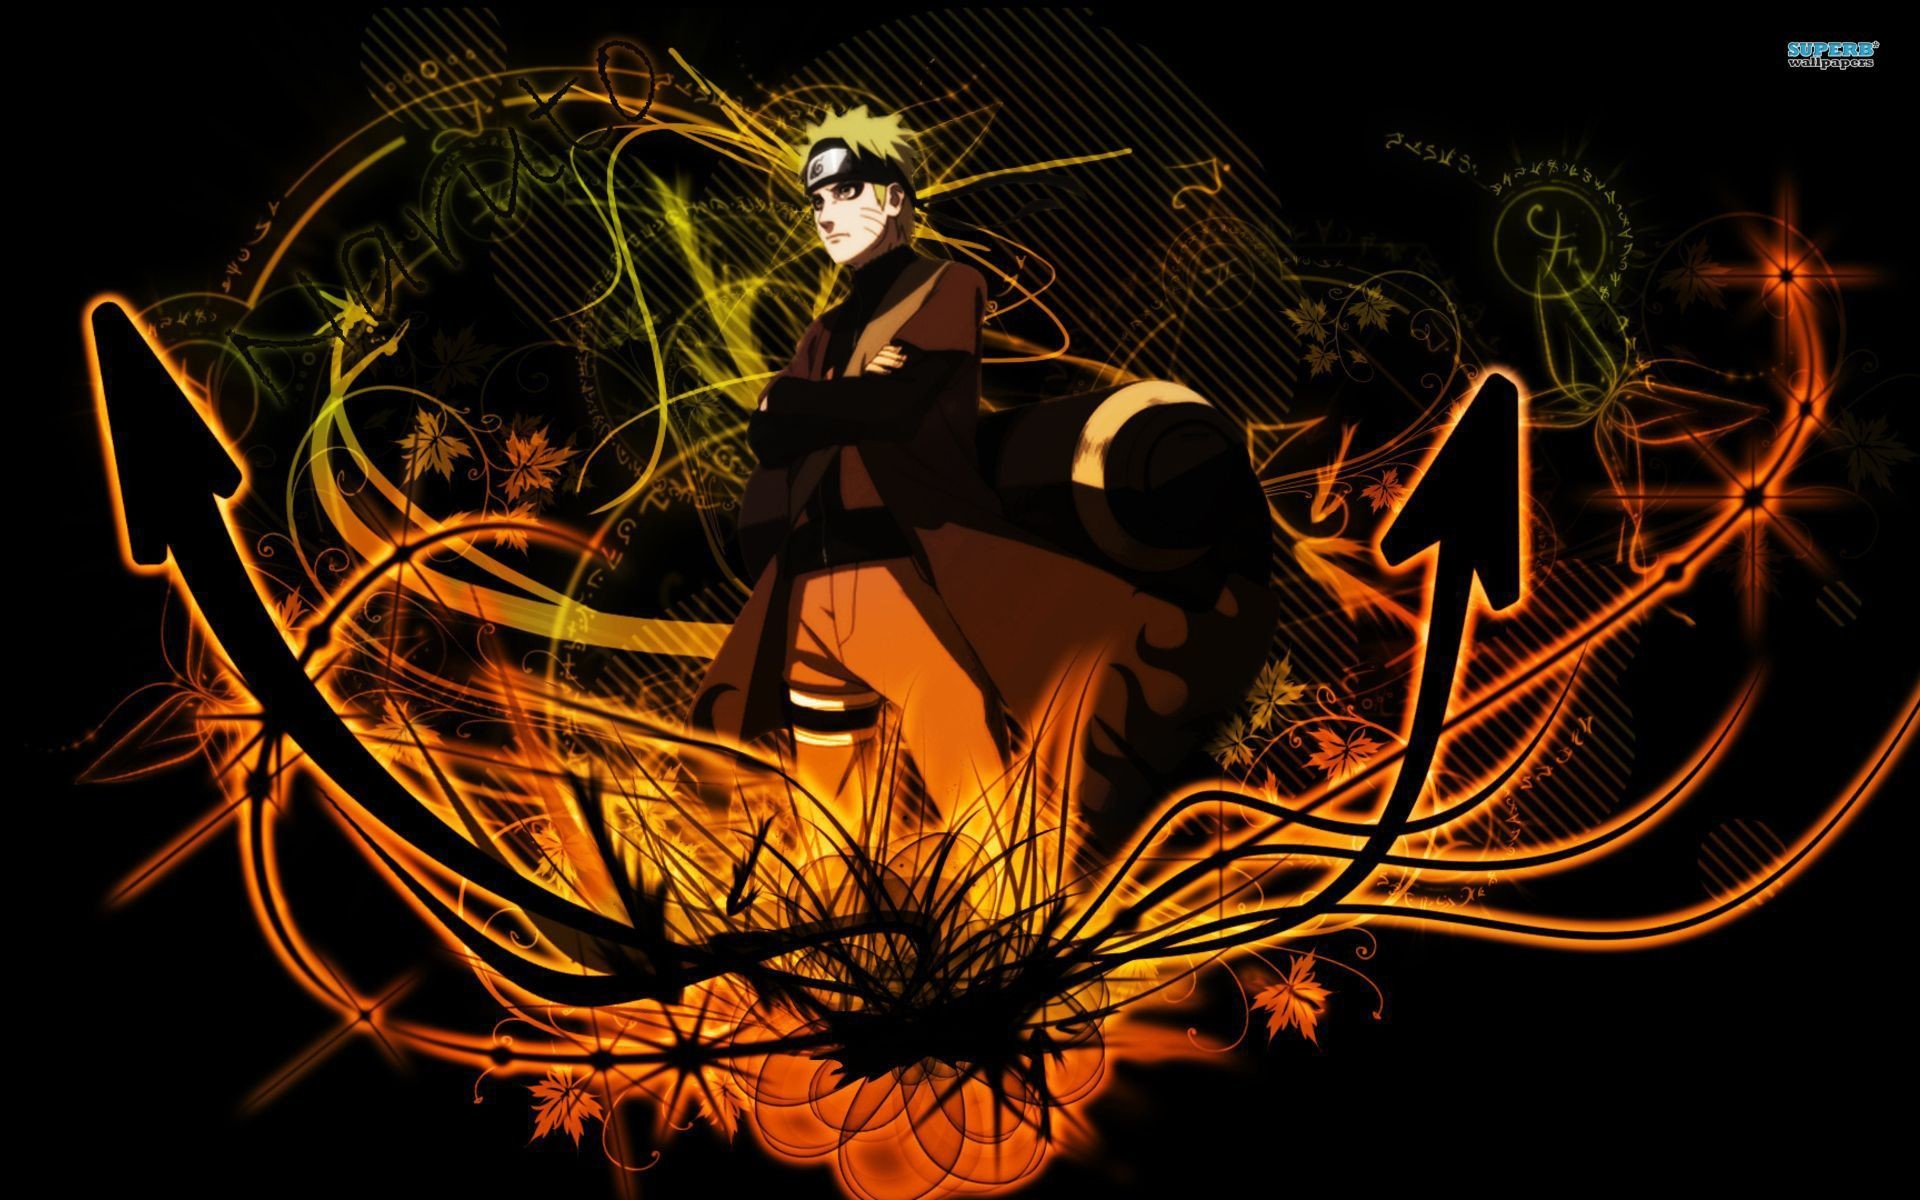 1920x1200 Gaara Background (45 Wallpapers) – HD Wallpapers ...